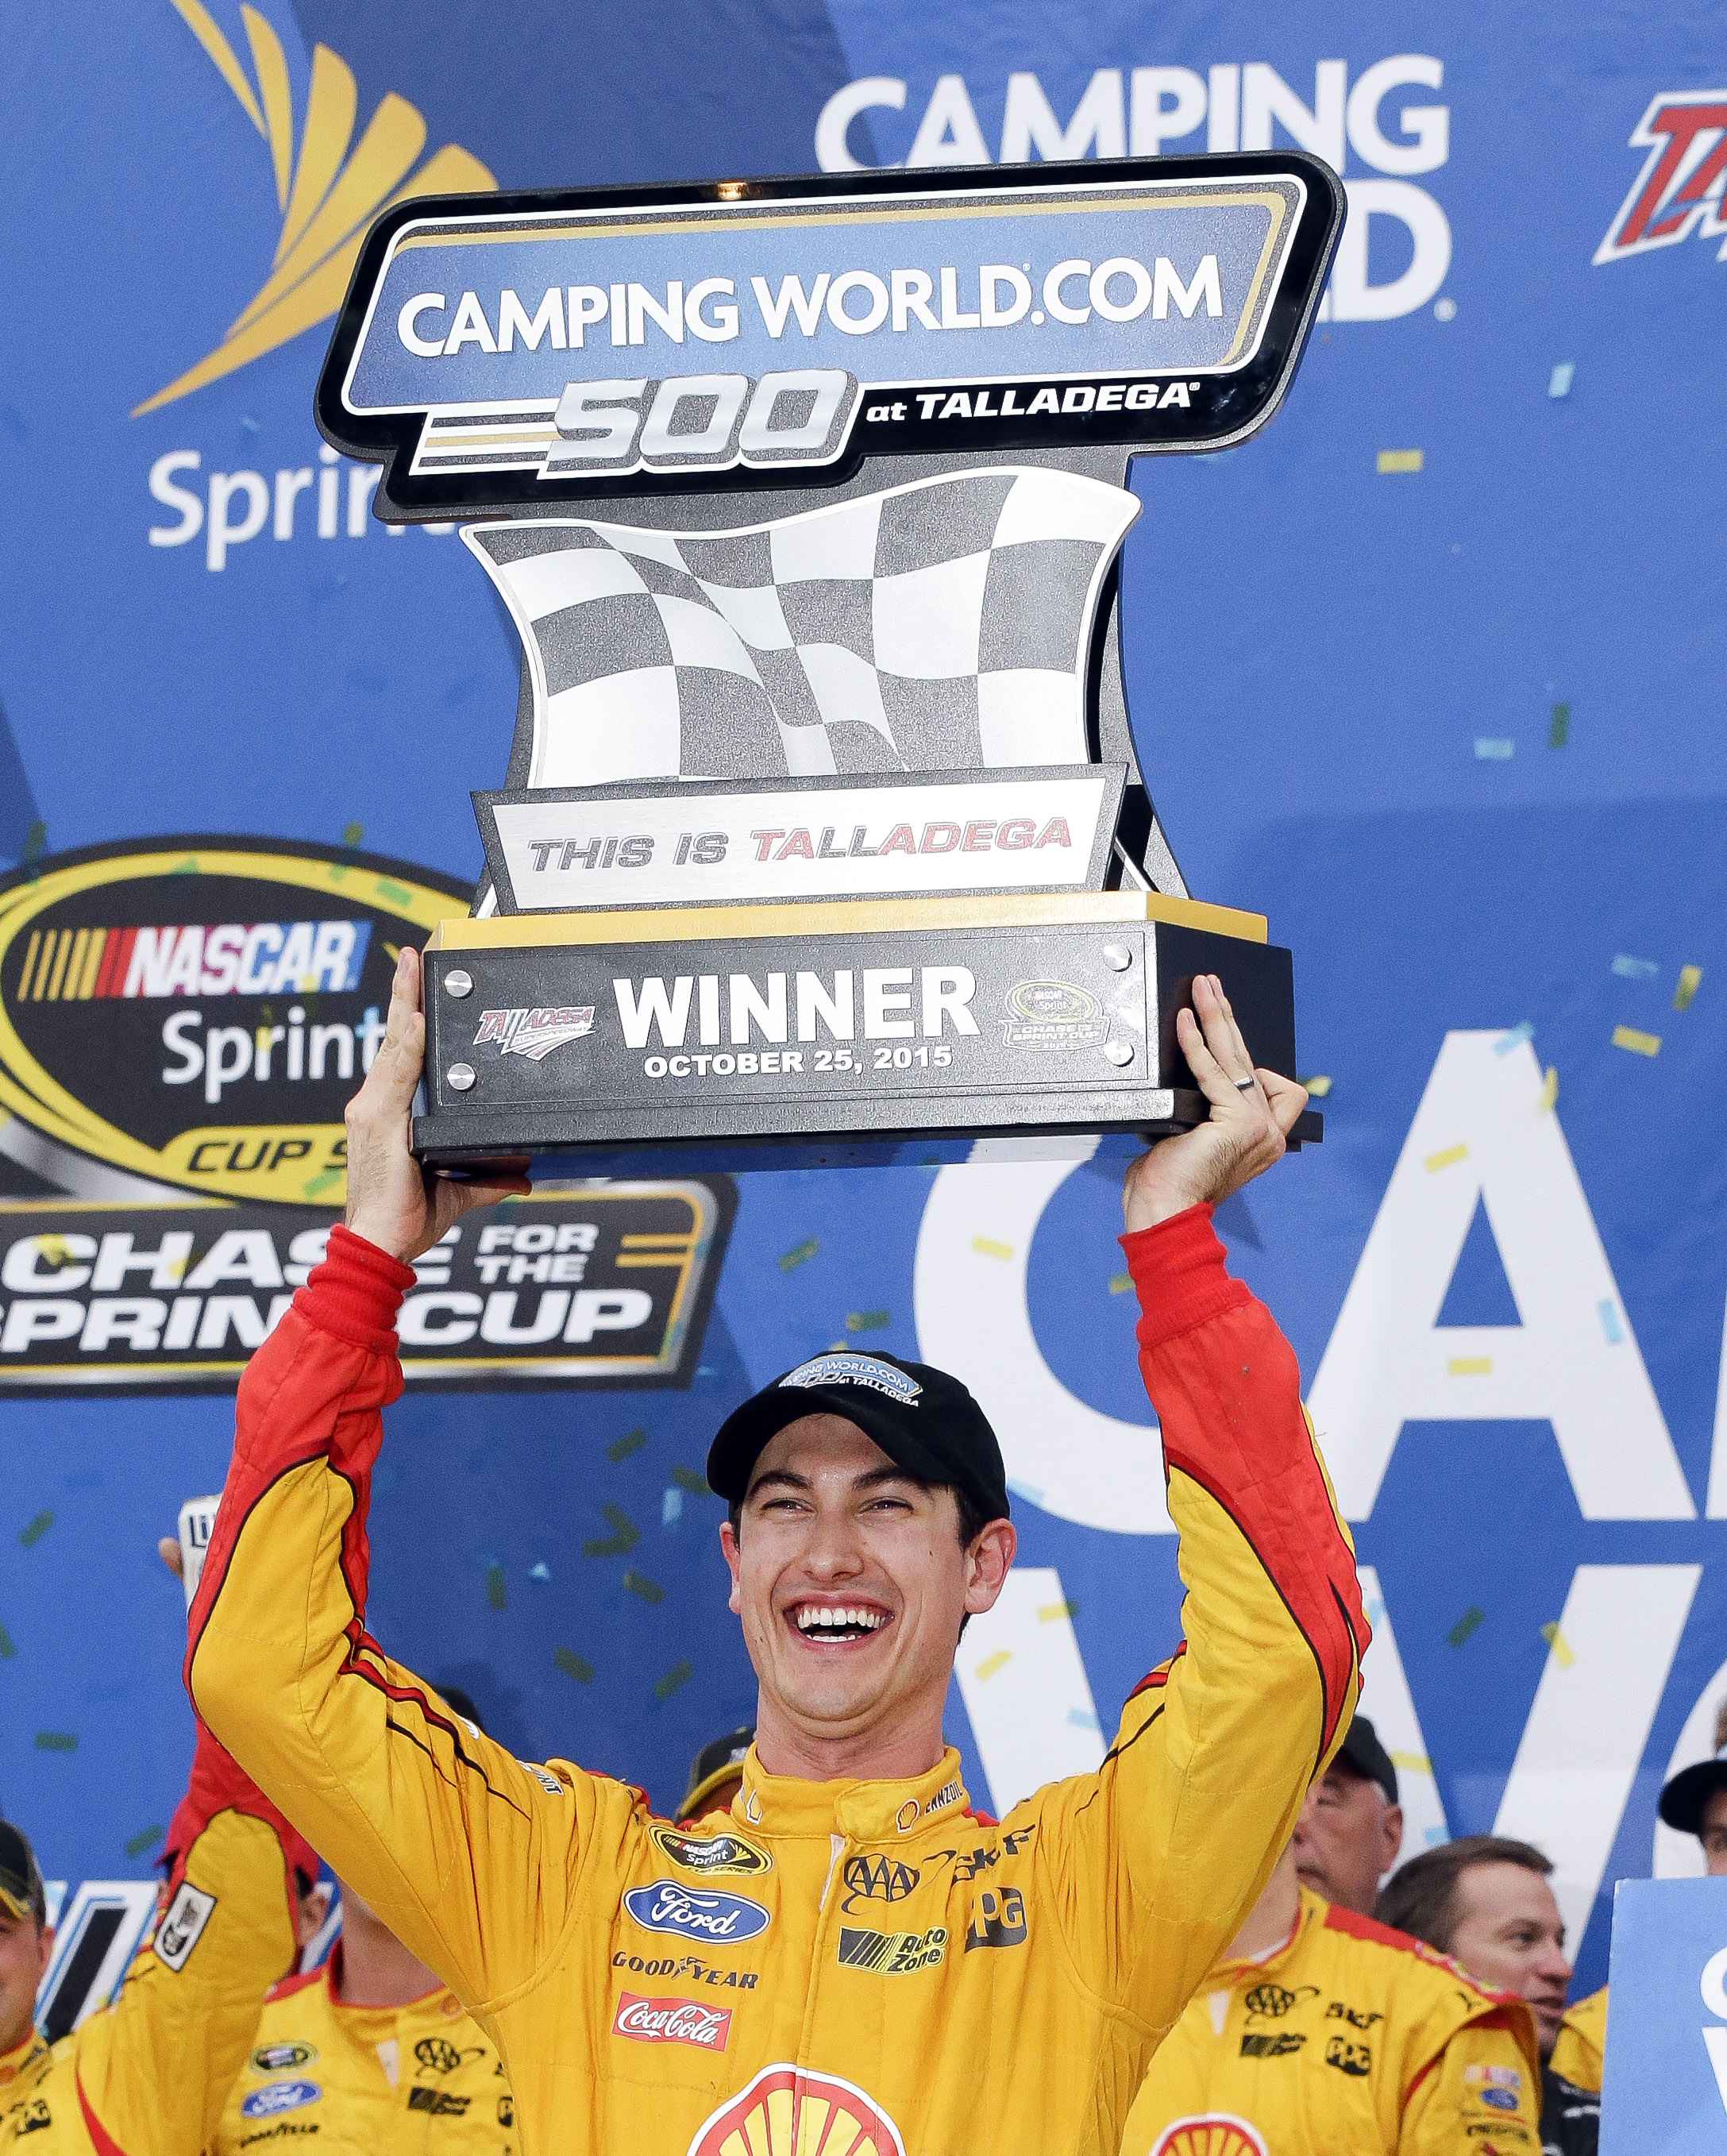 Sprint Cup Series driver Joey Logano (22) holds up the trophy after winning the during the NASCAR Sprint Cup Series auto race at Talladega Superspeedway Sunday, Oct. 25, 2015, in Talladega, Ala. (AP Photo/Butch Dill)